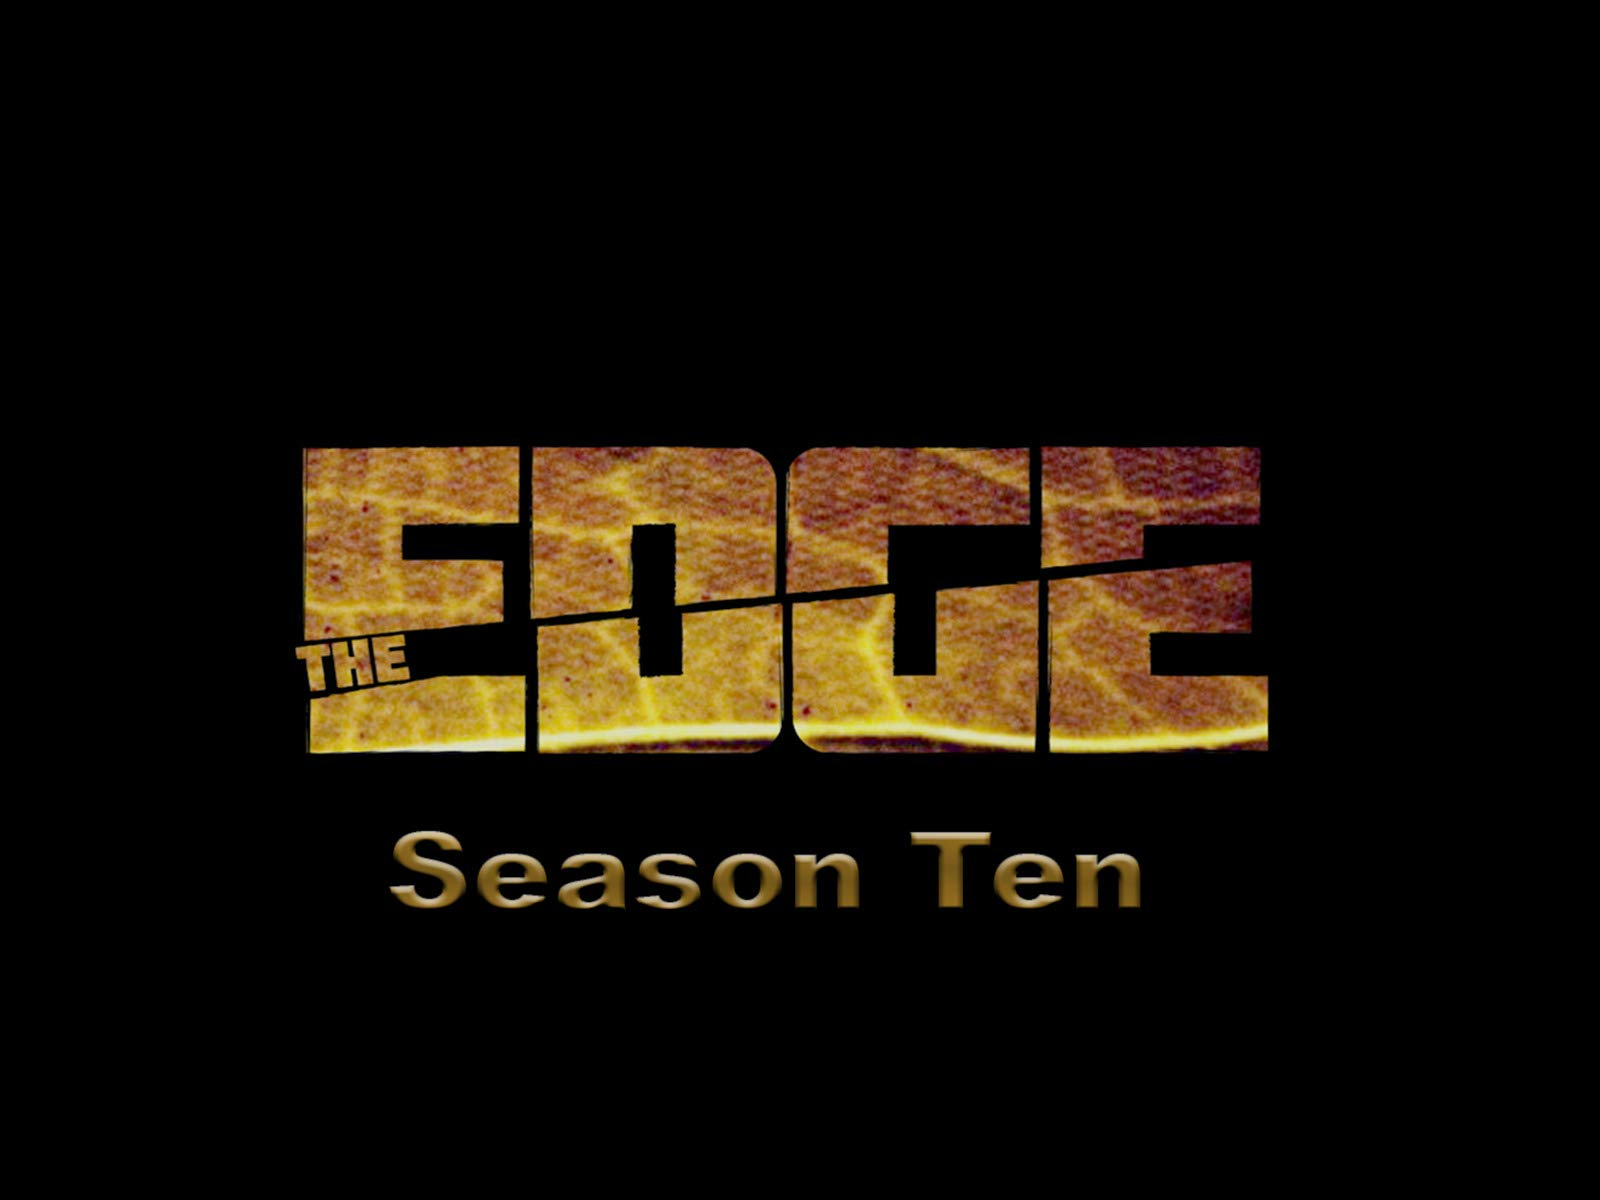 The Edge - Season 10